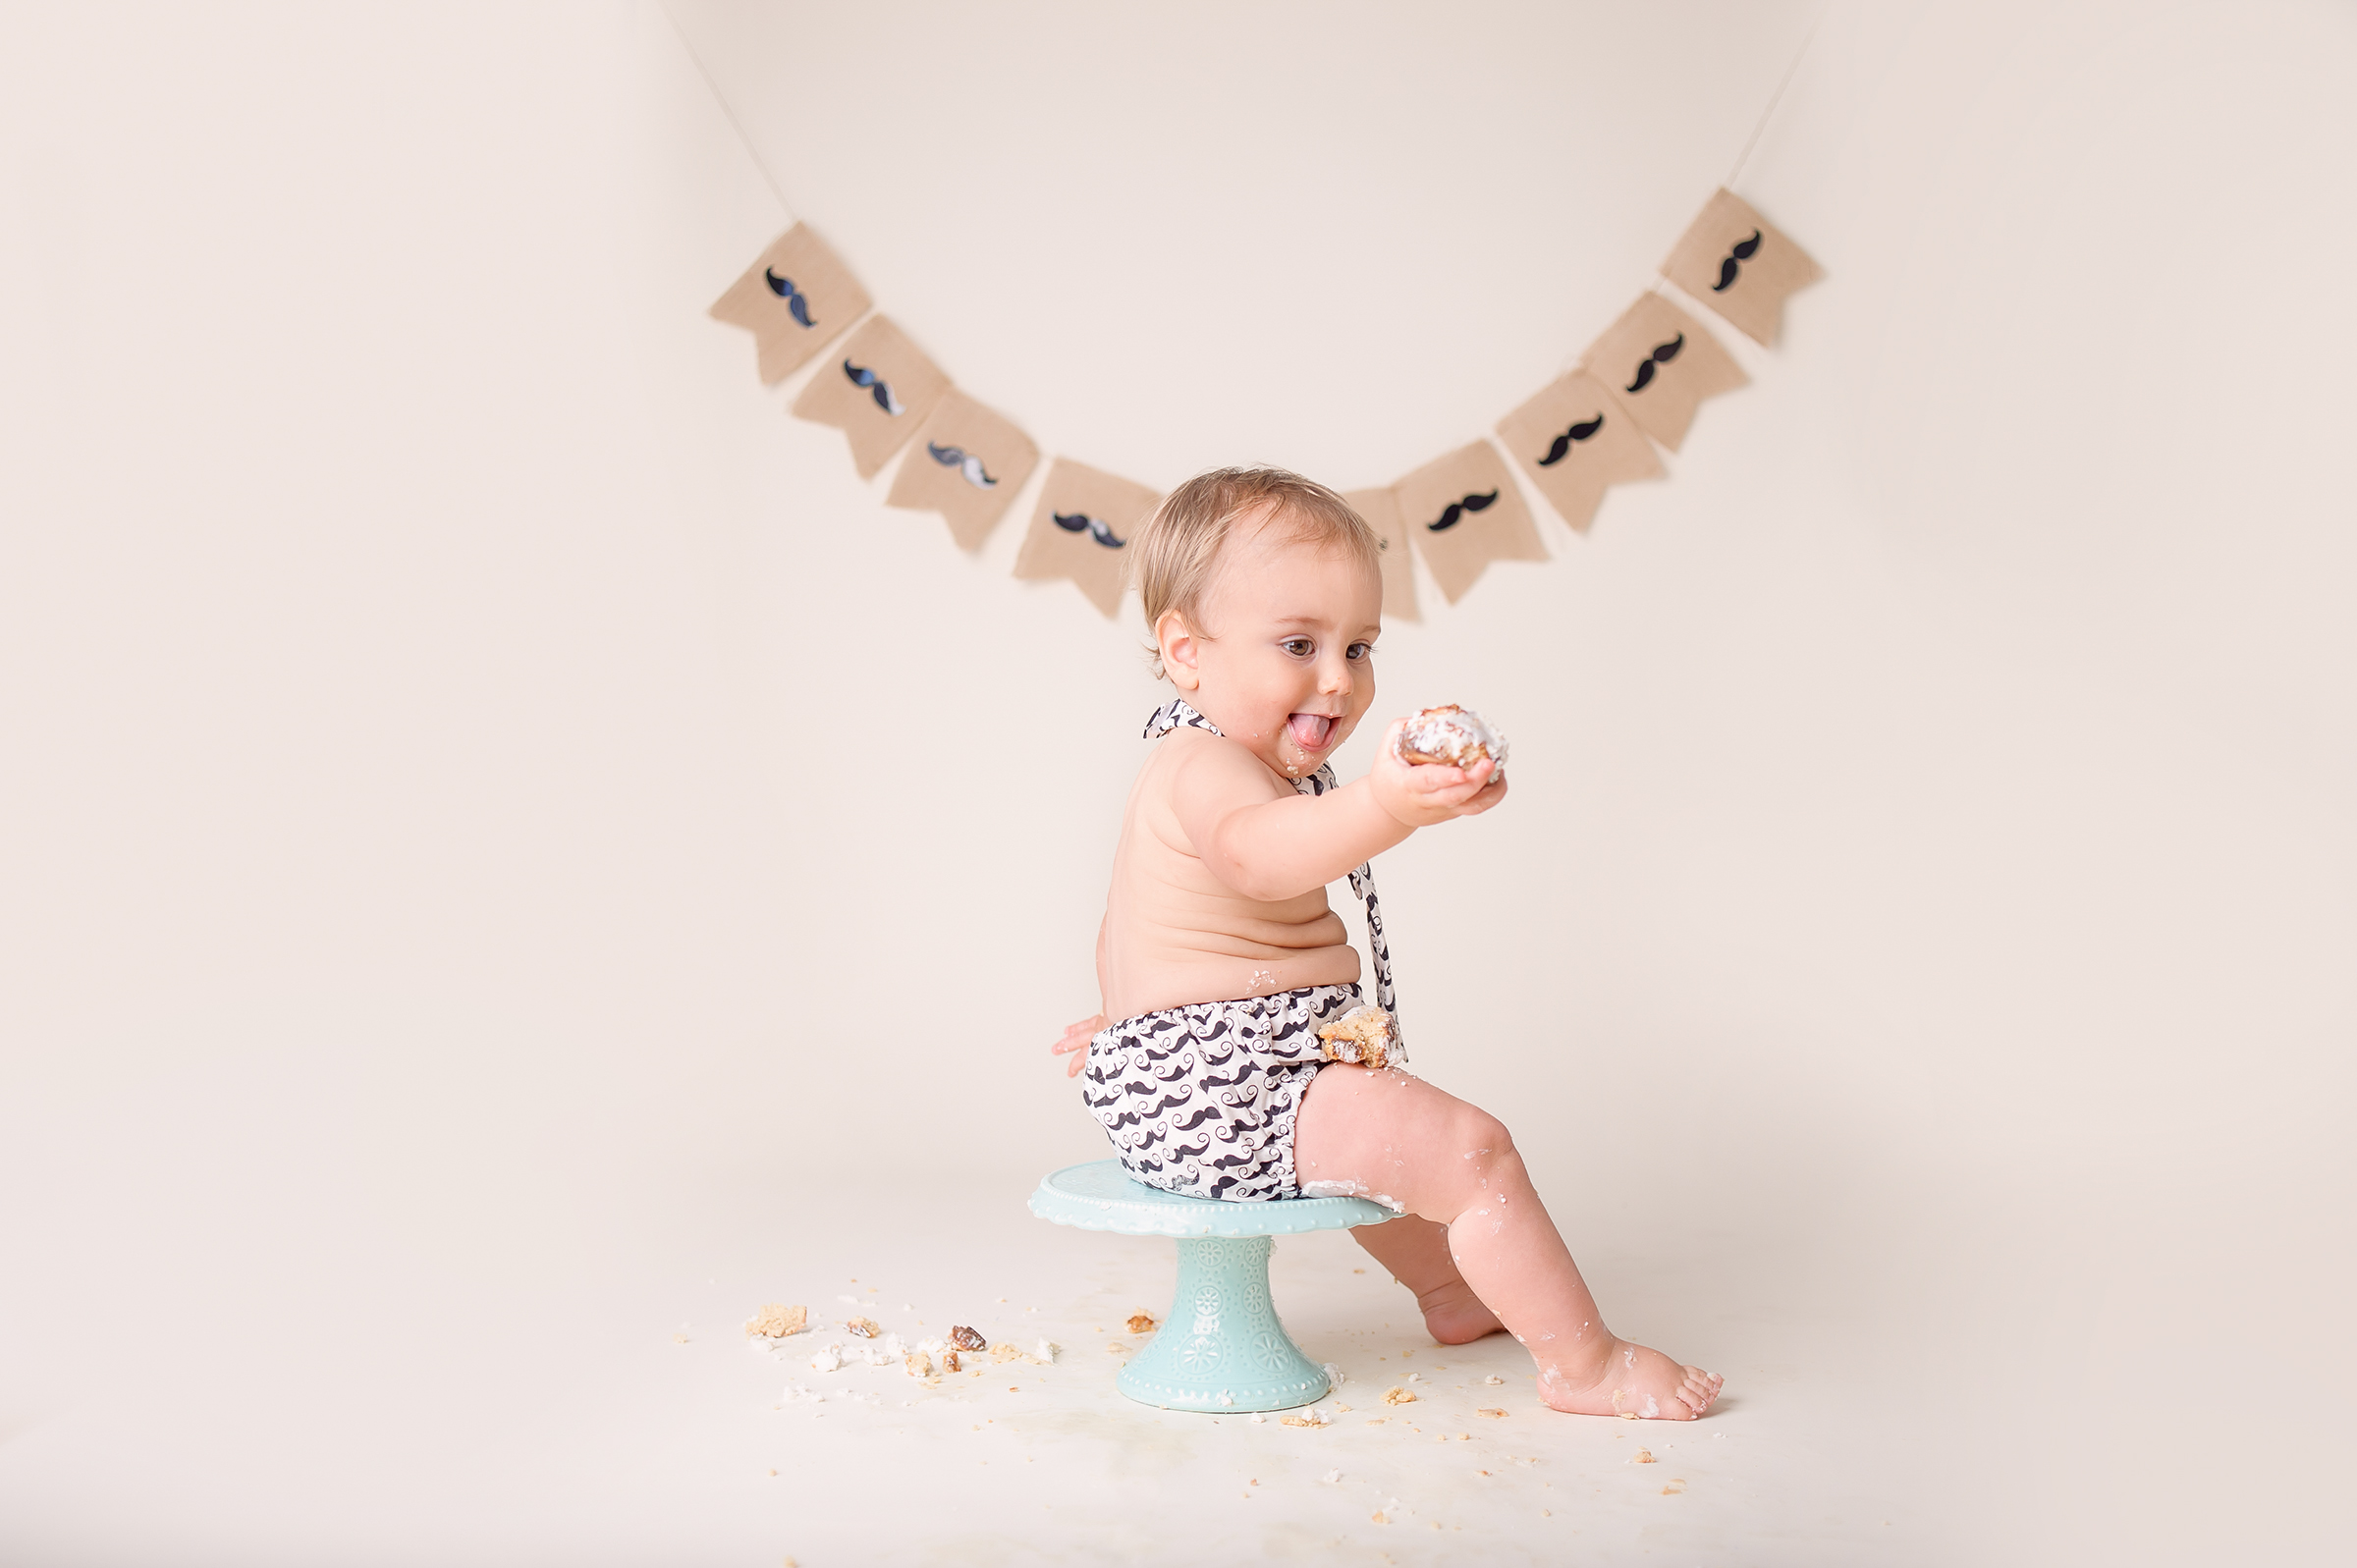 Funny expression from baby during cake smash photo session in San Diego baby photography studio